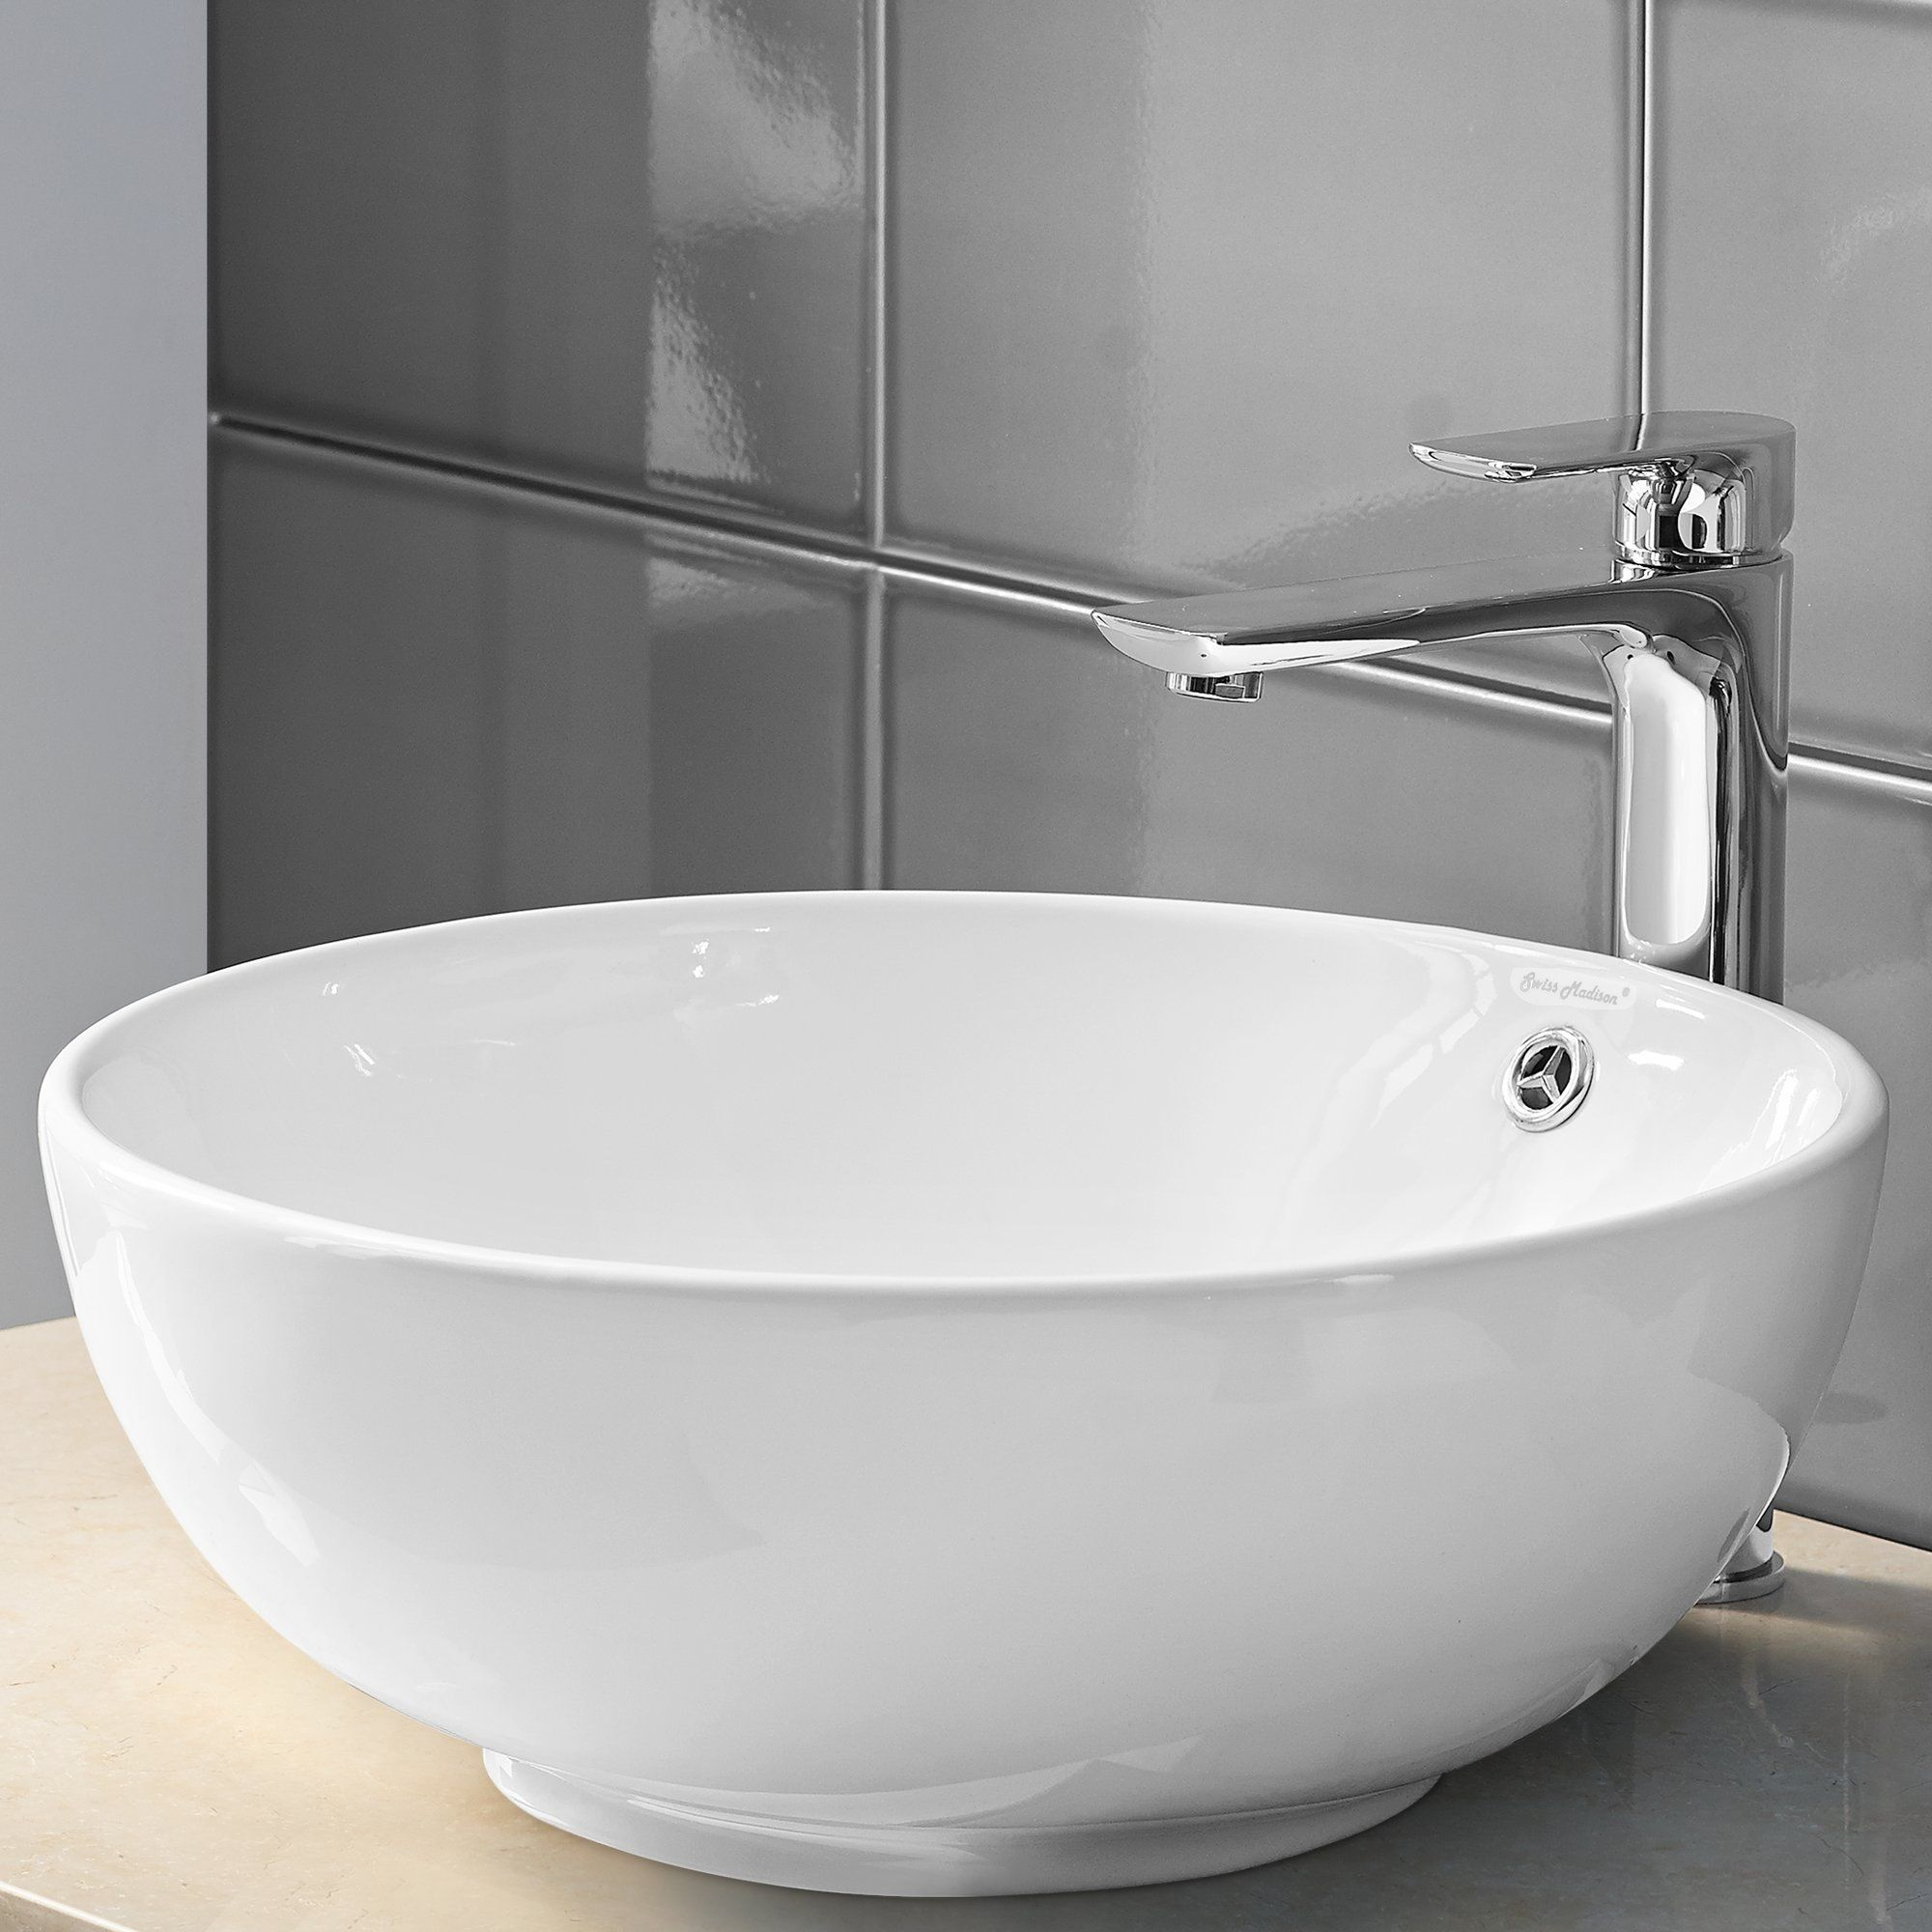 Plaisir Circular Vessel Bathroom Sink with Overflow | Products ...